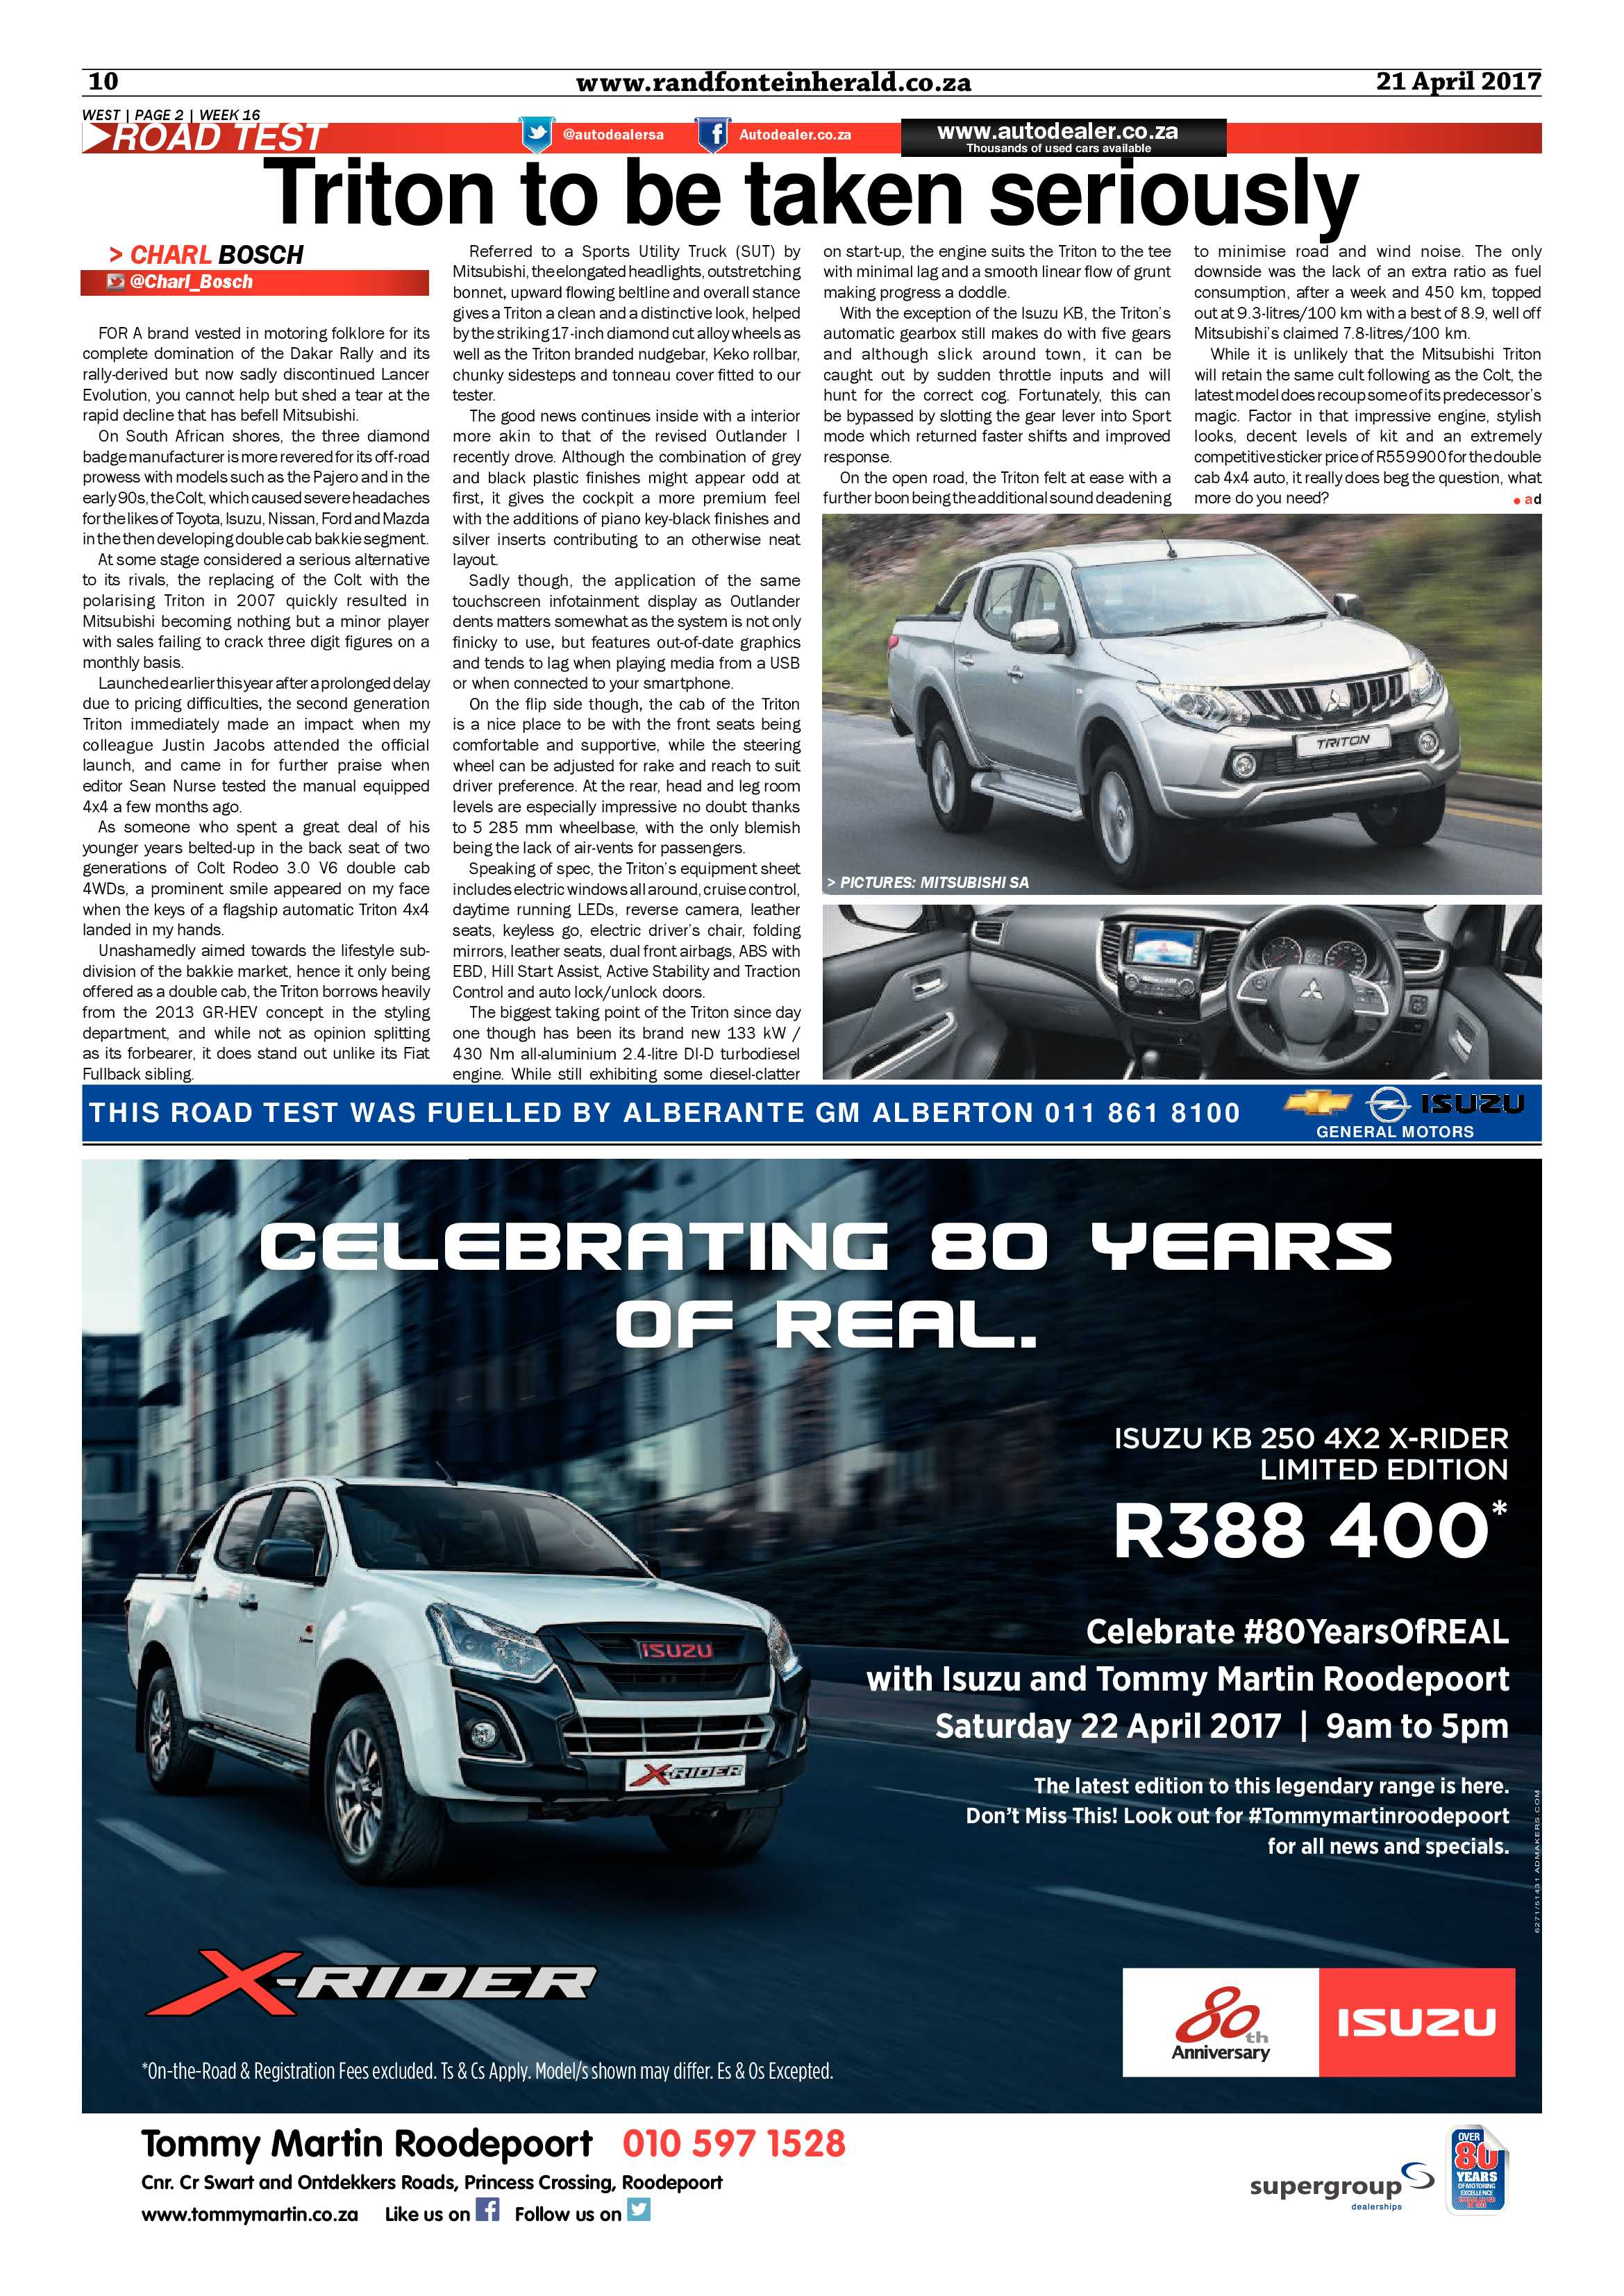 randfontein-herald-21-april-2017-epapers-page-10